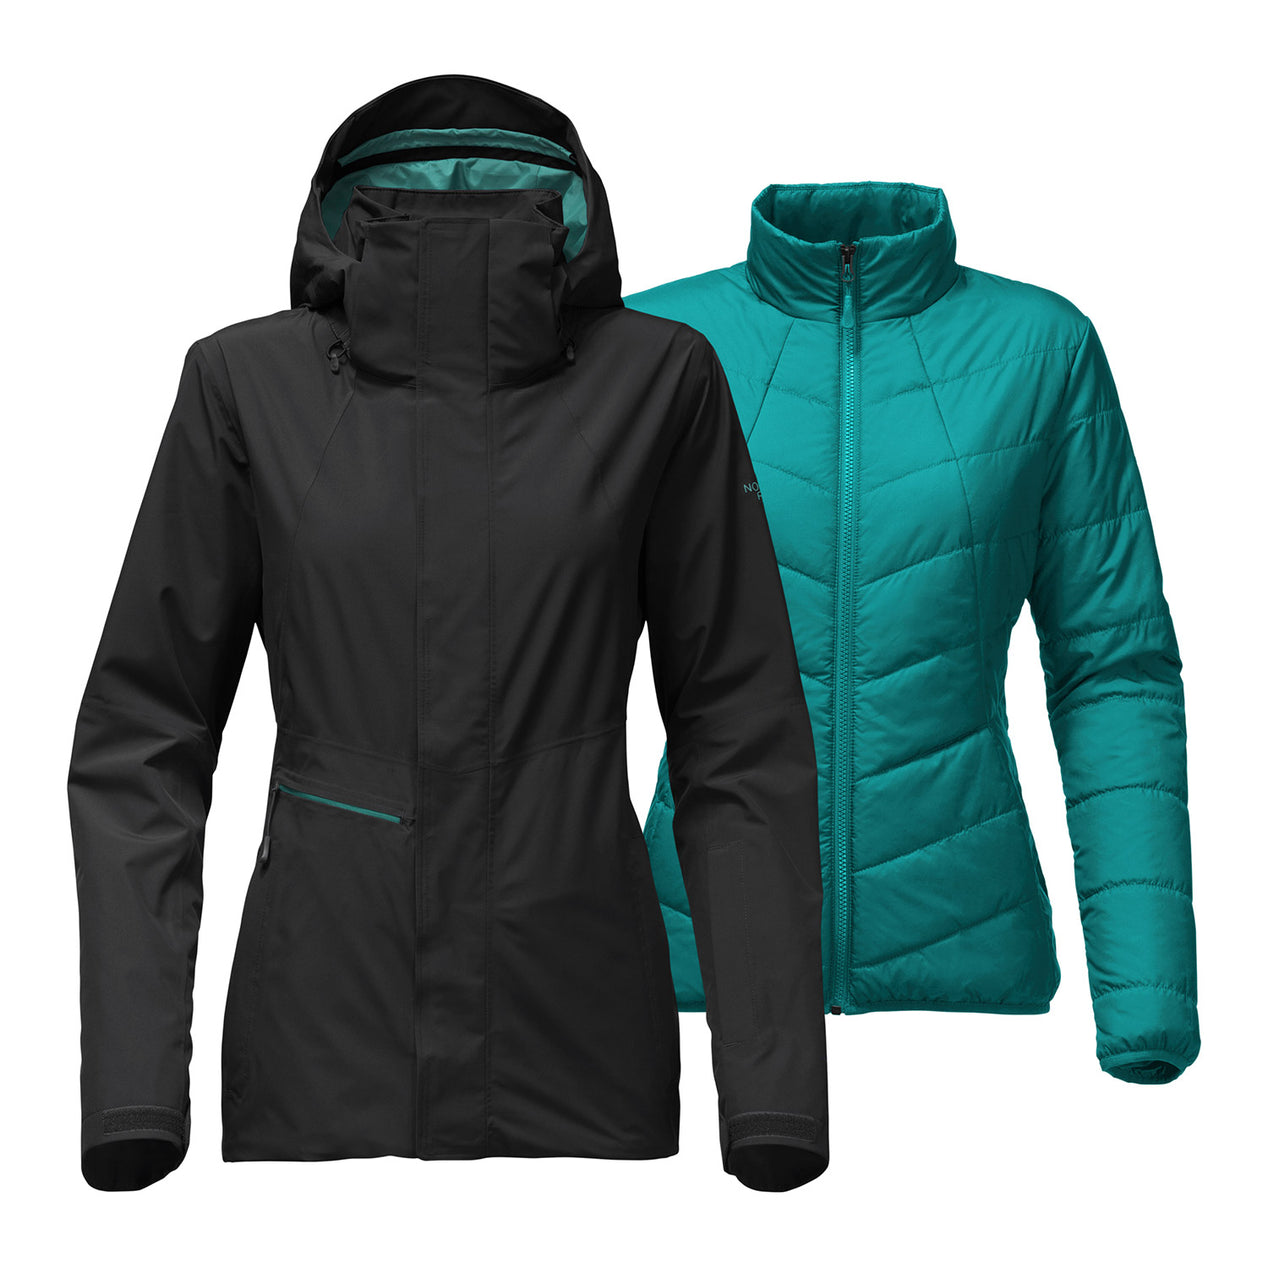 ebddc0d29 The North Face Women's Garner Triclimate Jacket Past Season